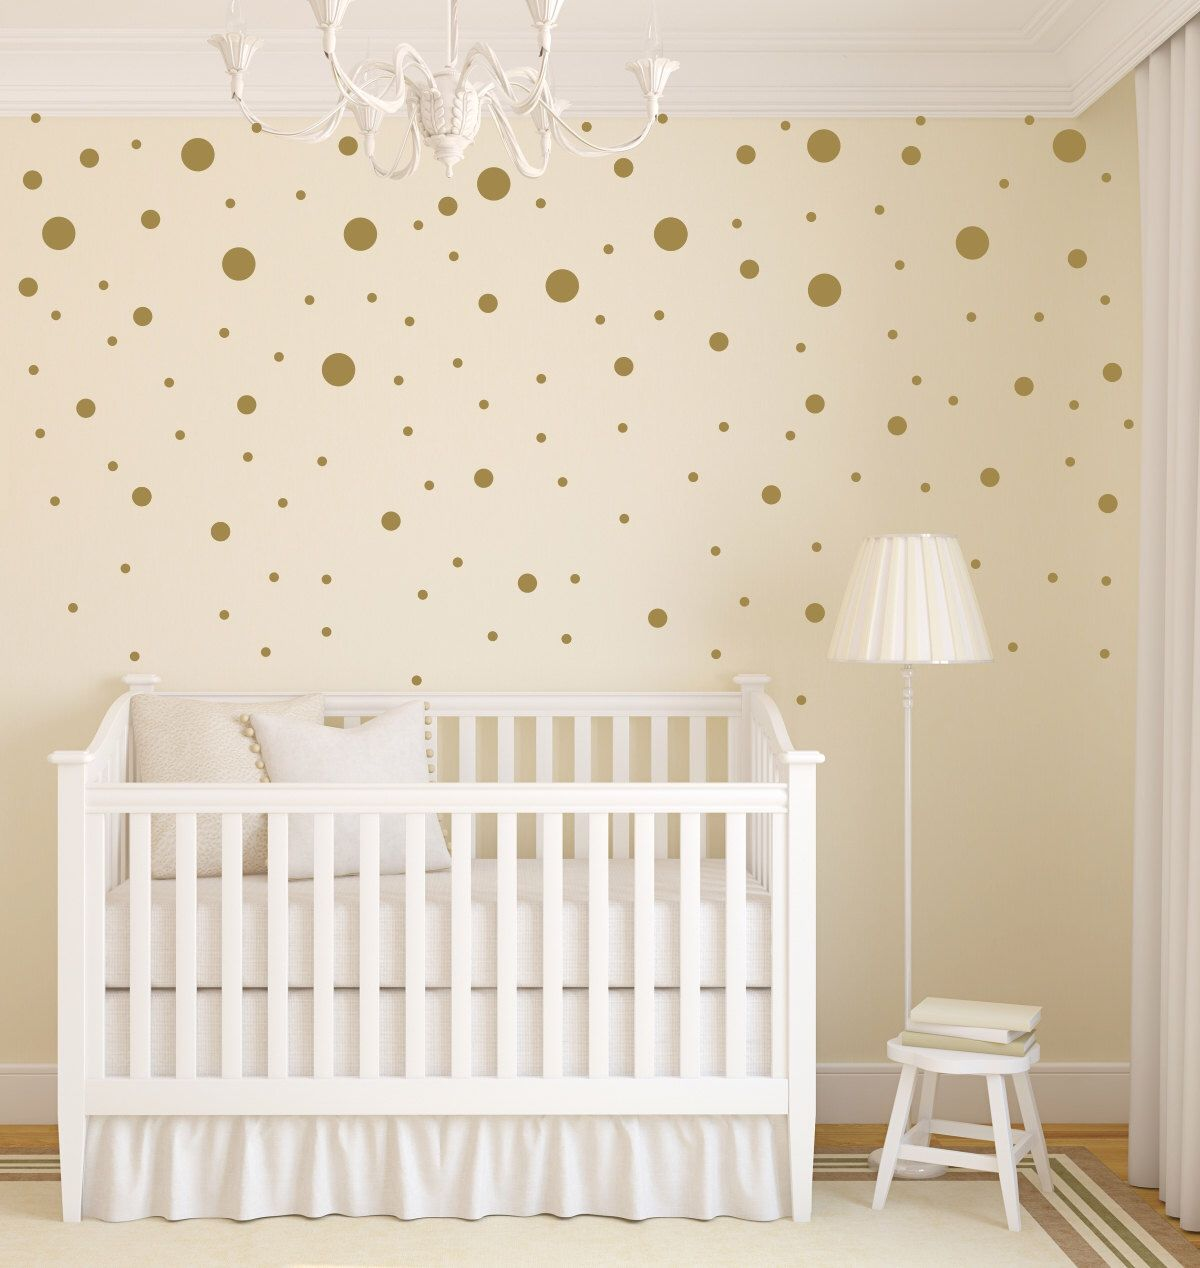 Gold Dot Decals Polka Dot Wall Decal Gold Vinyl Dots Gold - Somewhat about wall stickers